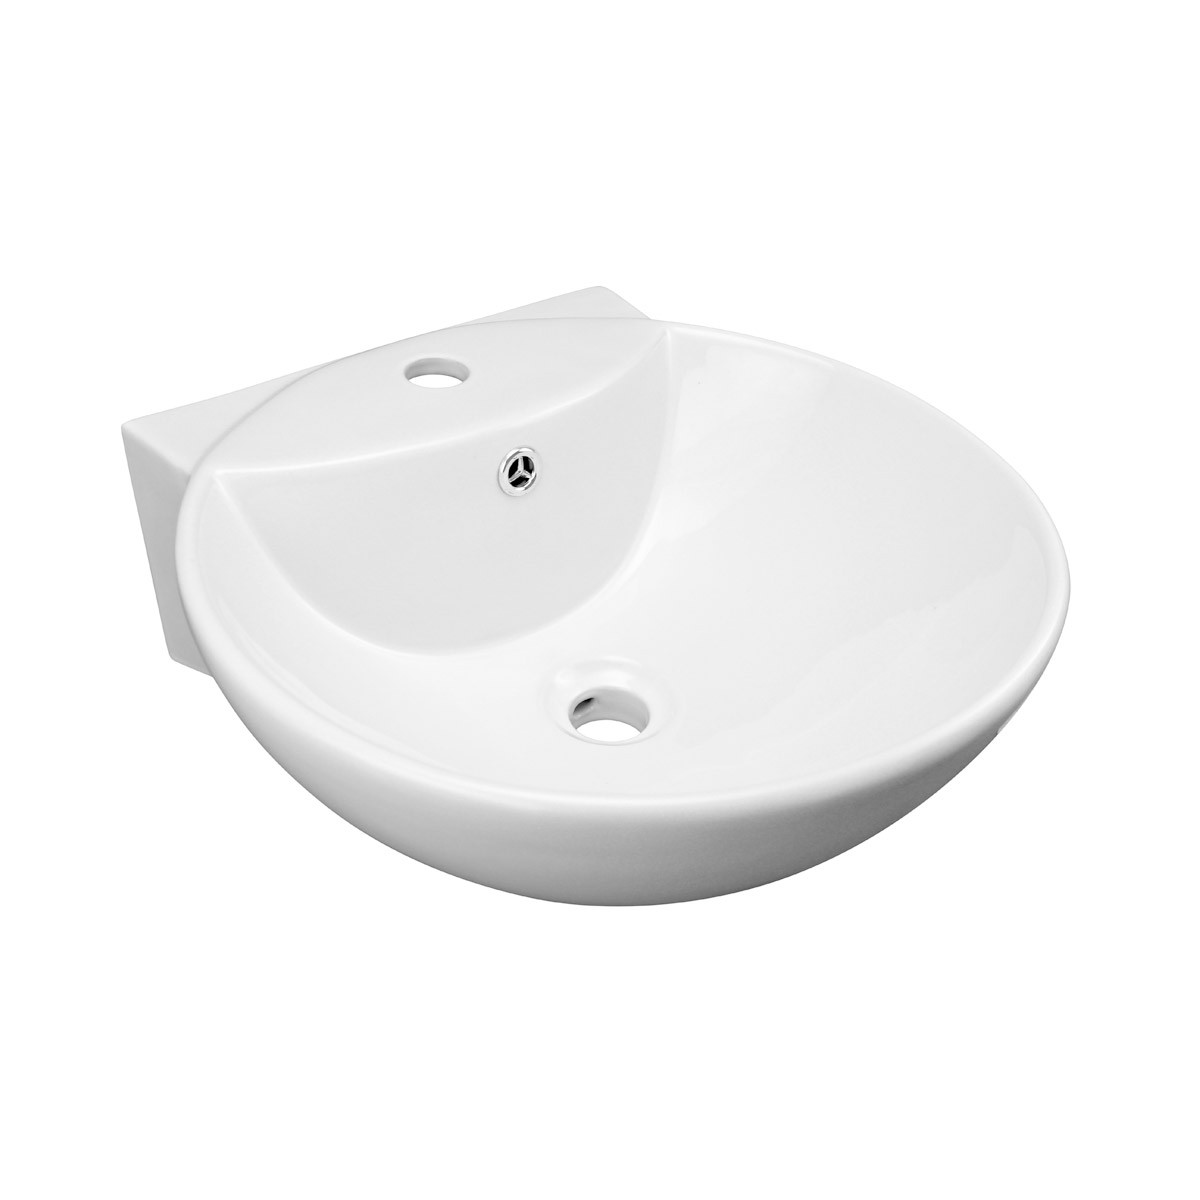 Tiny Vessel Sink : Small Bathroom Sink Vessel White China Wall Mount